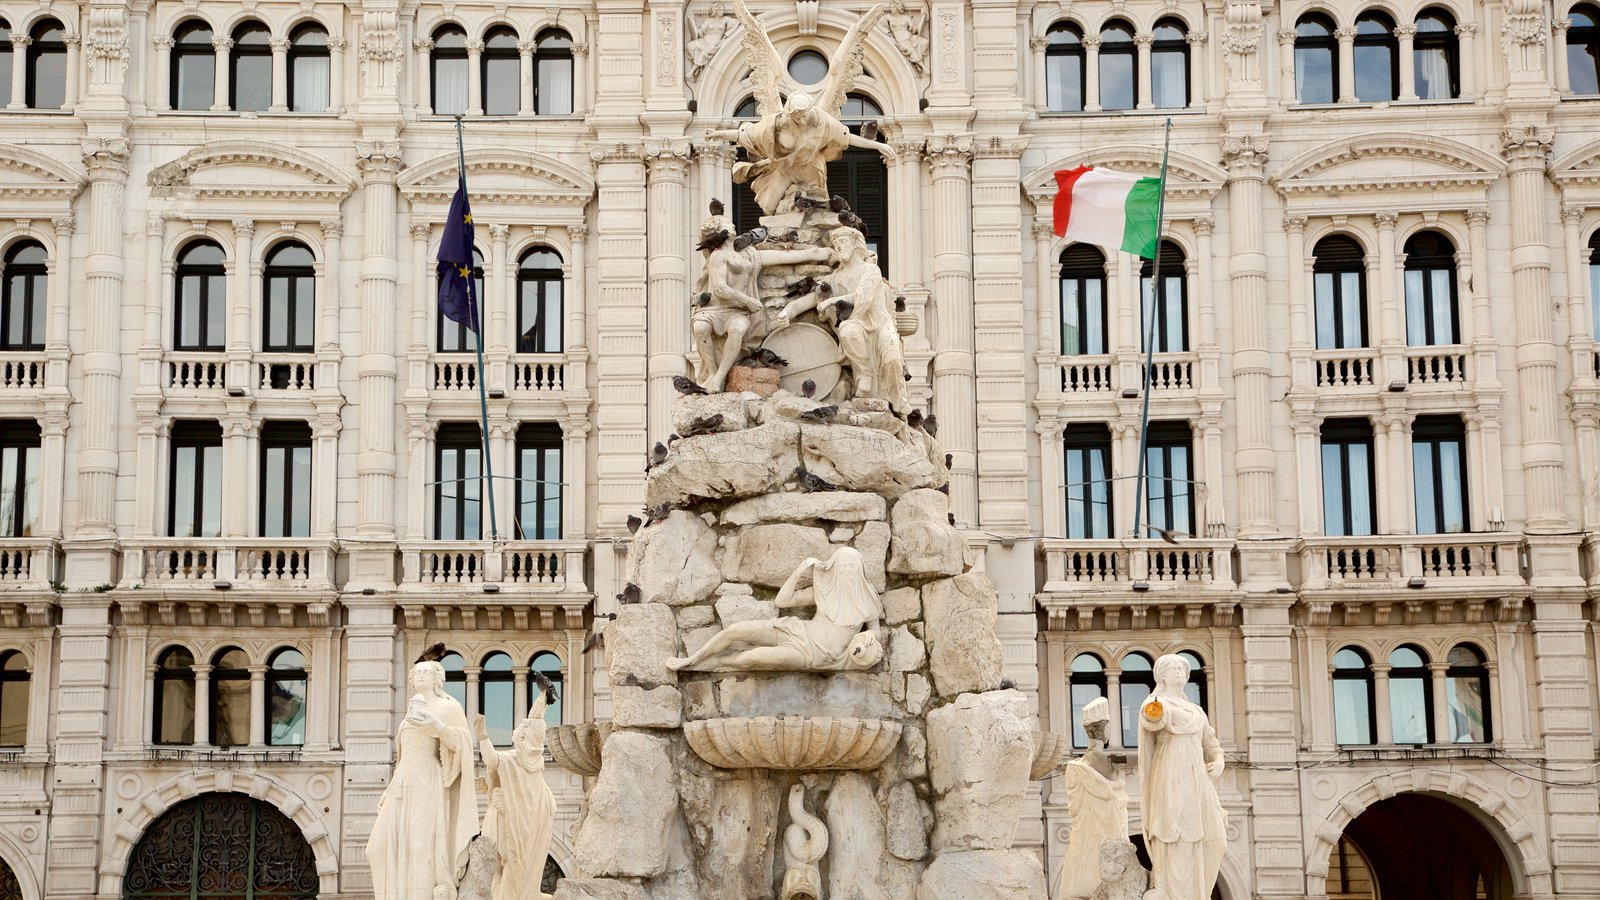 Piazza dell\'Unita which includes a statue or sculpture and heritage architecture